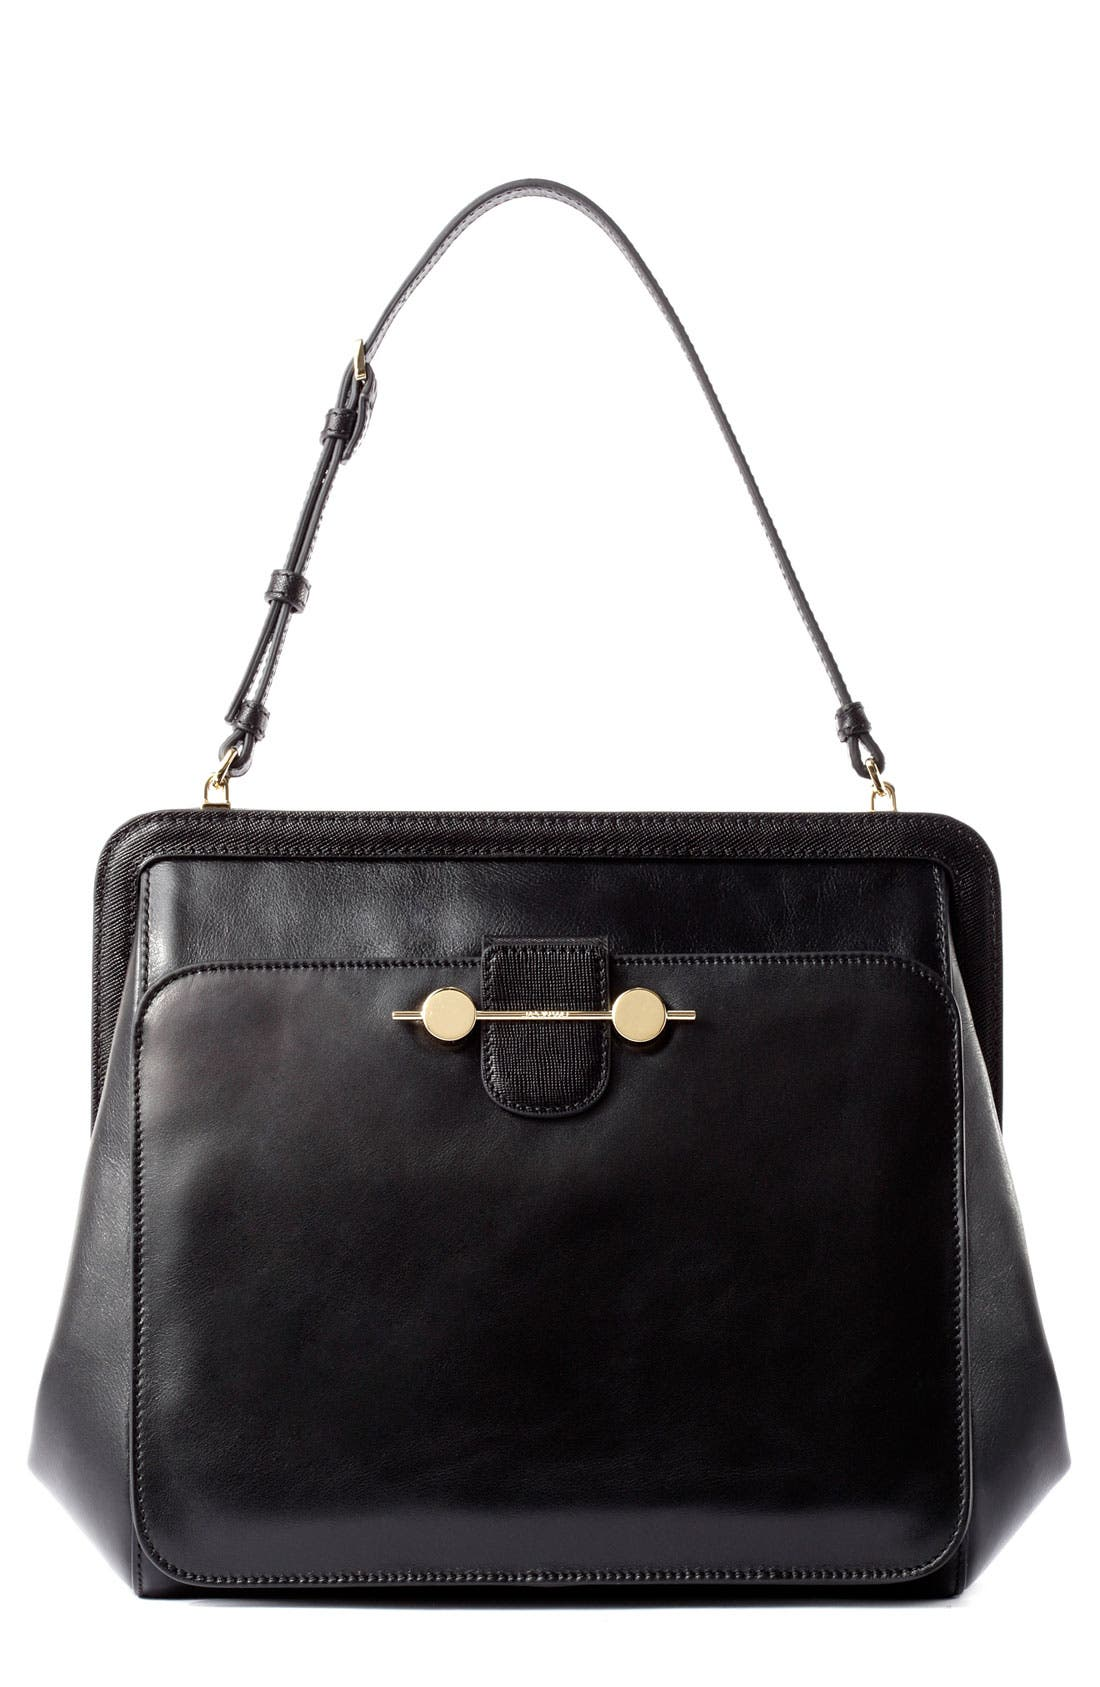 Alternate Image 1 Selected - Jason Wu 'Daphne' Leather Satchel